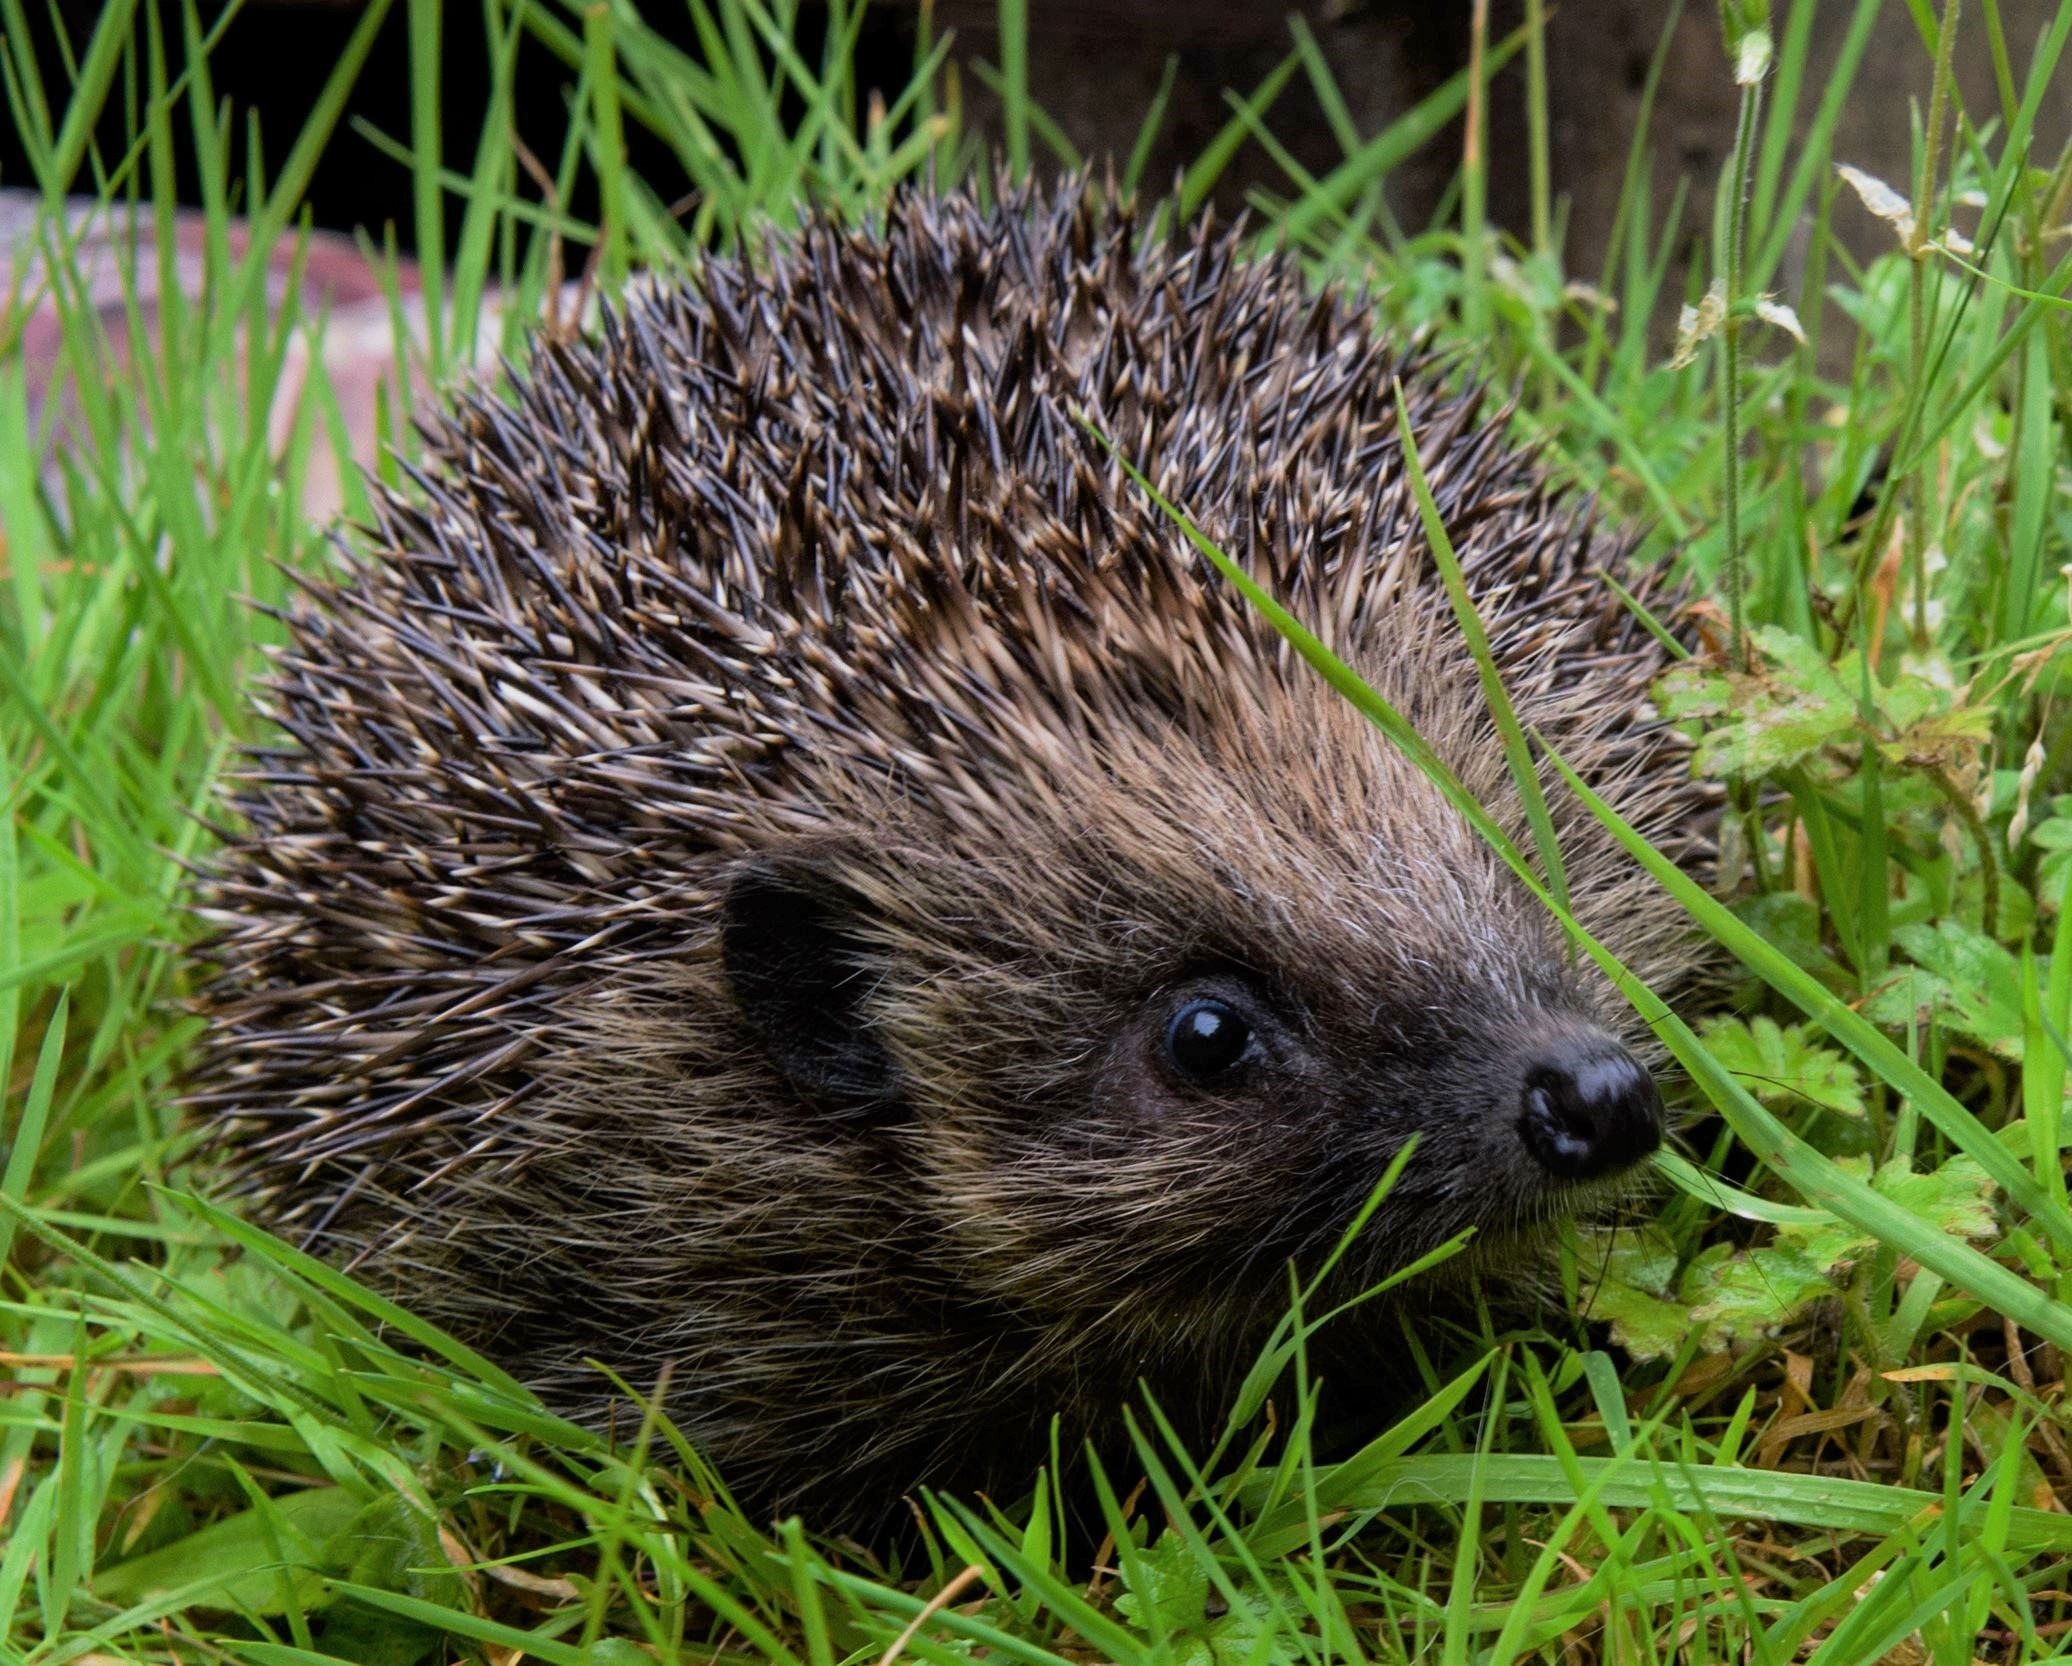 Woodlands – What's the best way to help a hog in need?